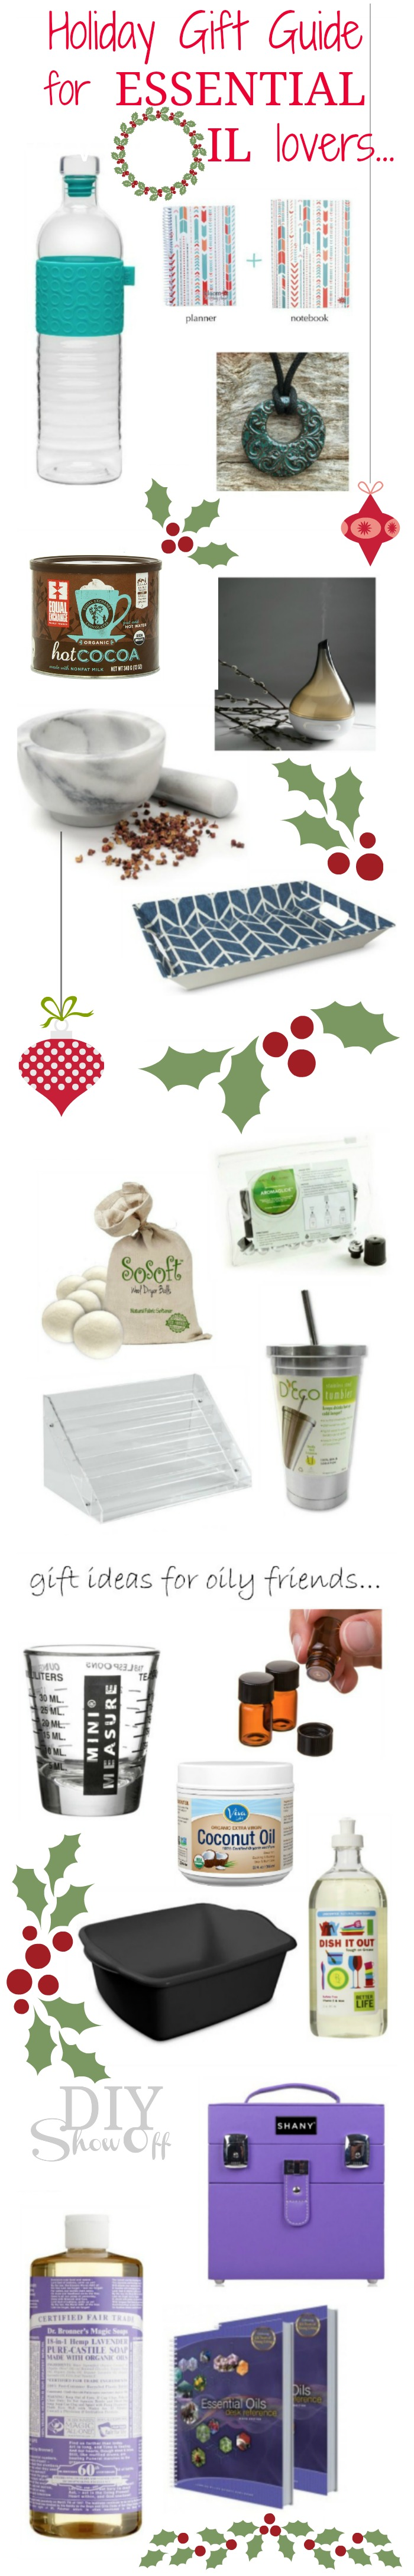 Holiday Gift Guide for Essential Oil Lovers @diyshowoff